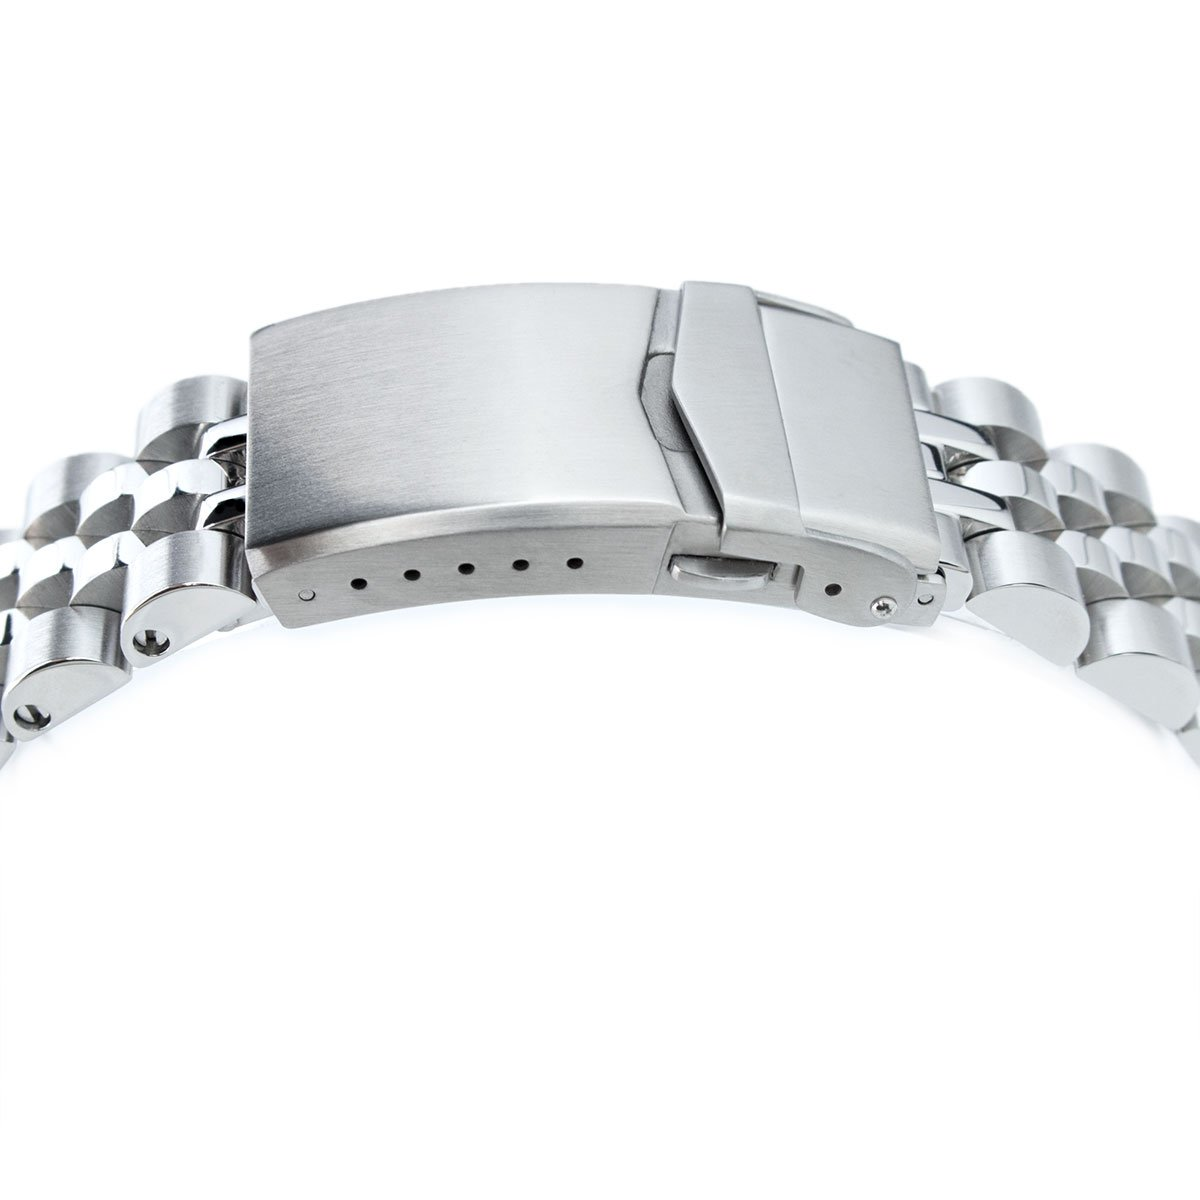 20mm Angus Jubilee 316L SS Watch Bracelet for Seiko Alpinist SARB017, V-Clasp by Seiko Replacement by MiLTAT (Image #4)